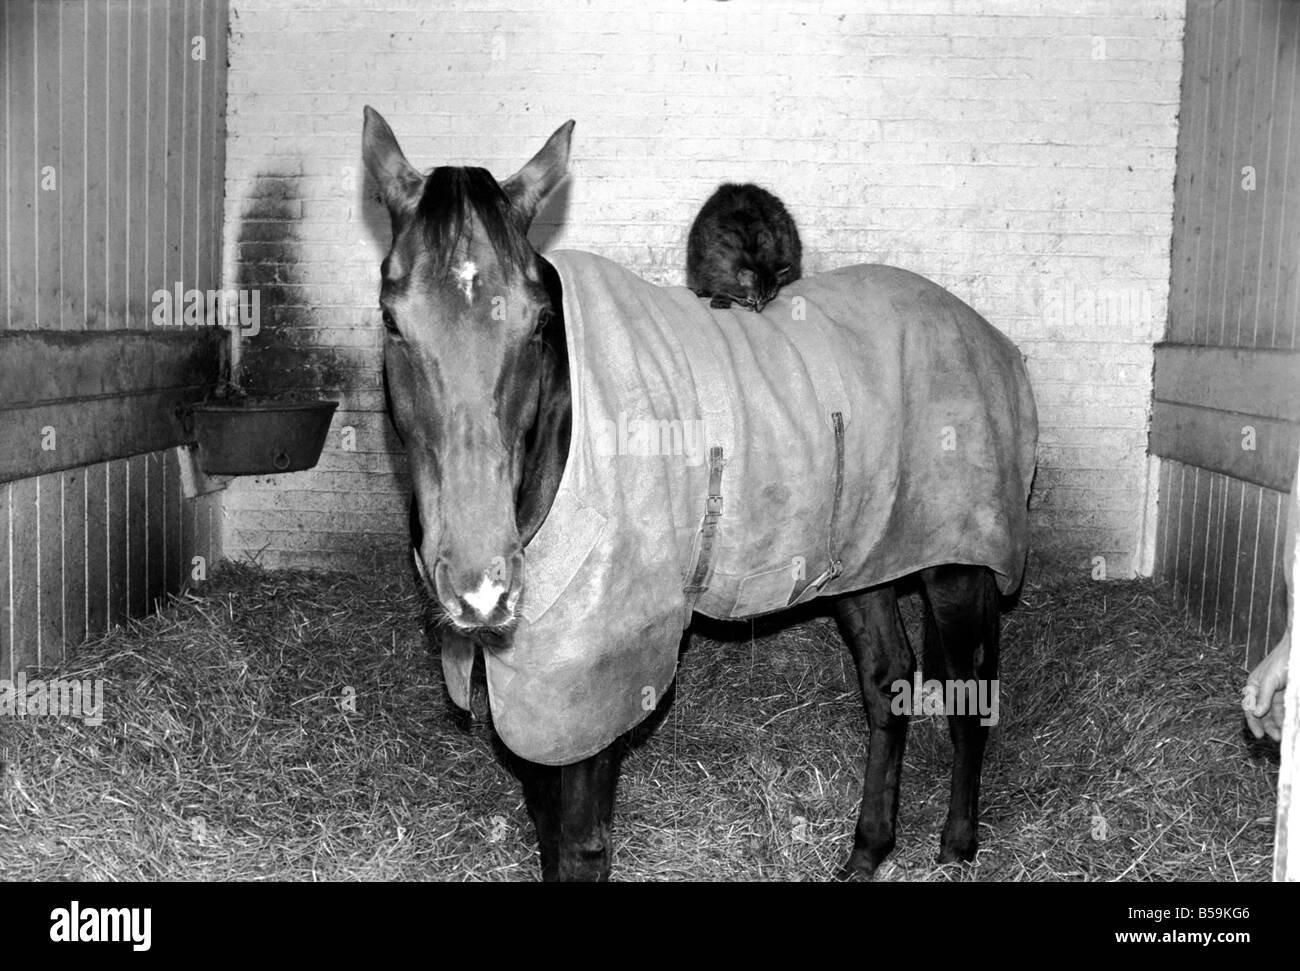 Ocean King wearing his coat was in his stall and on his back was a light weight jockey in the form of the stables - Stock Image